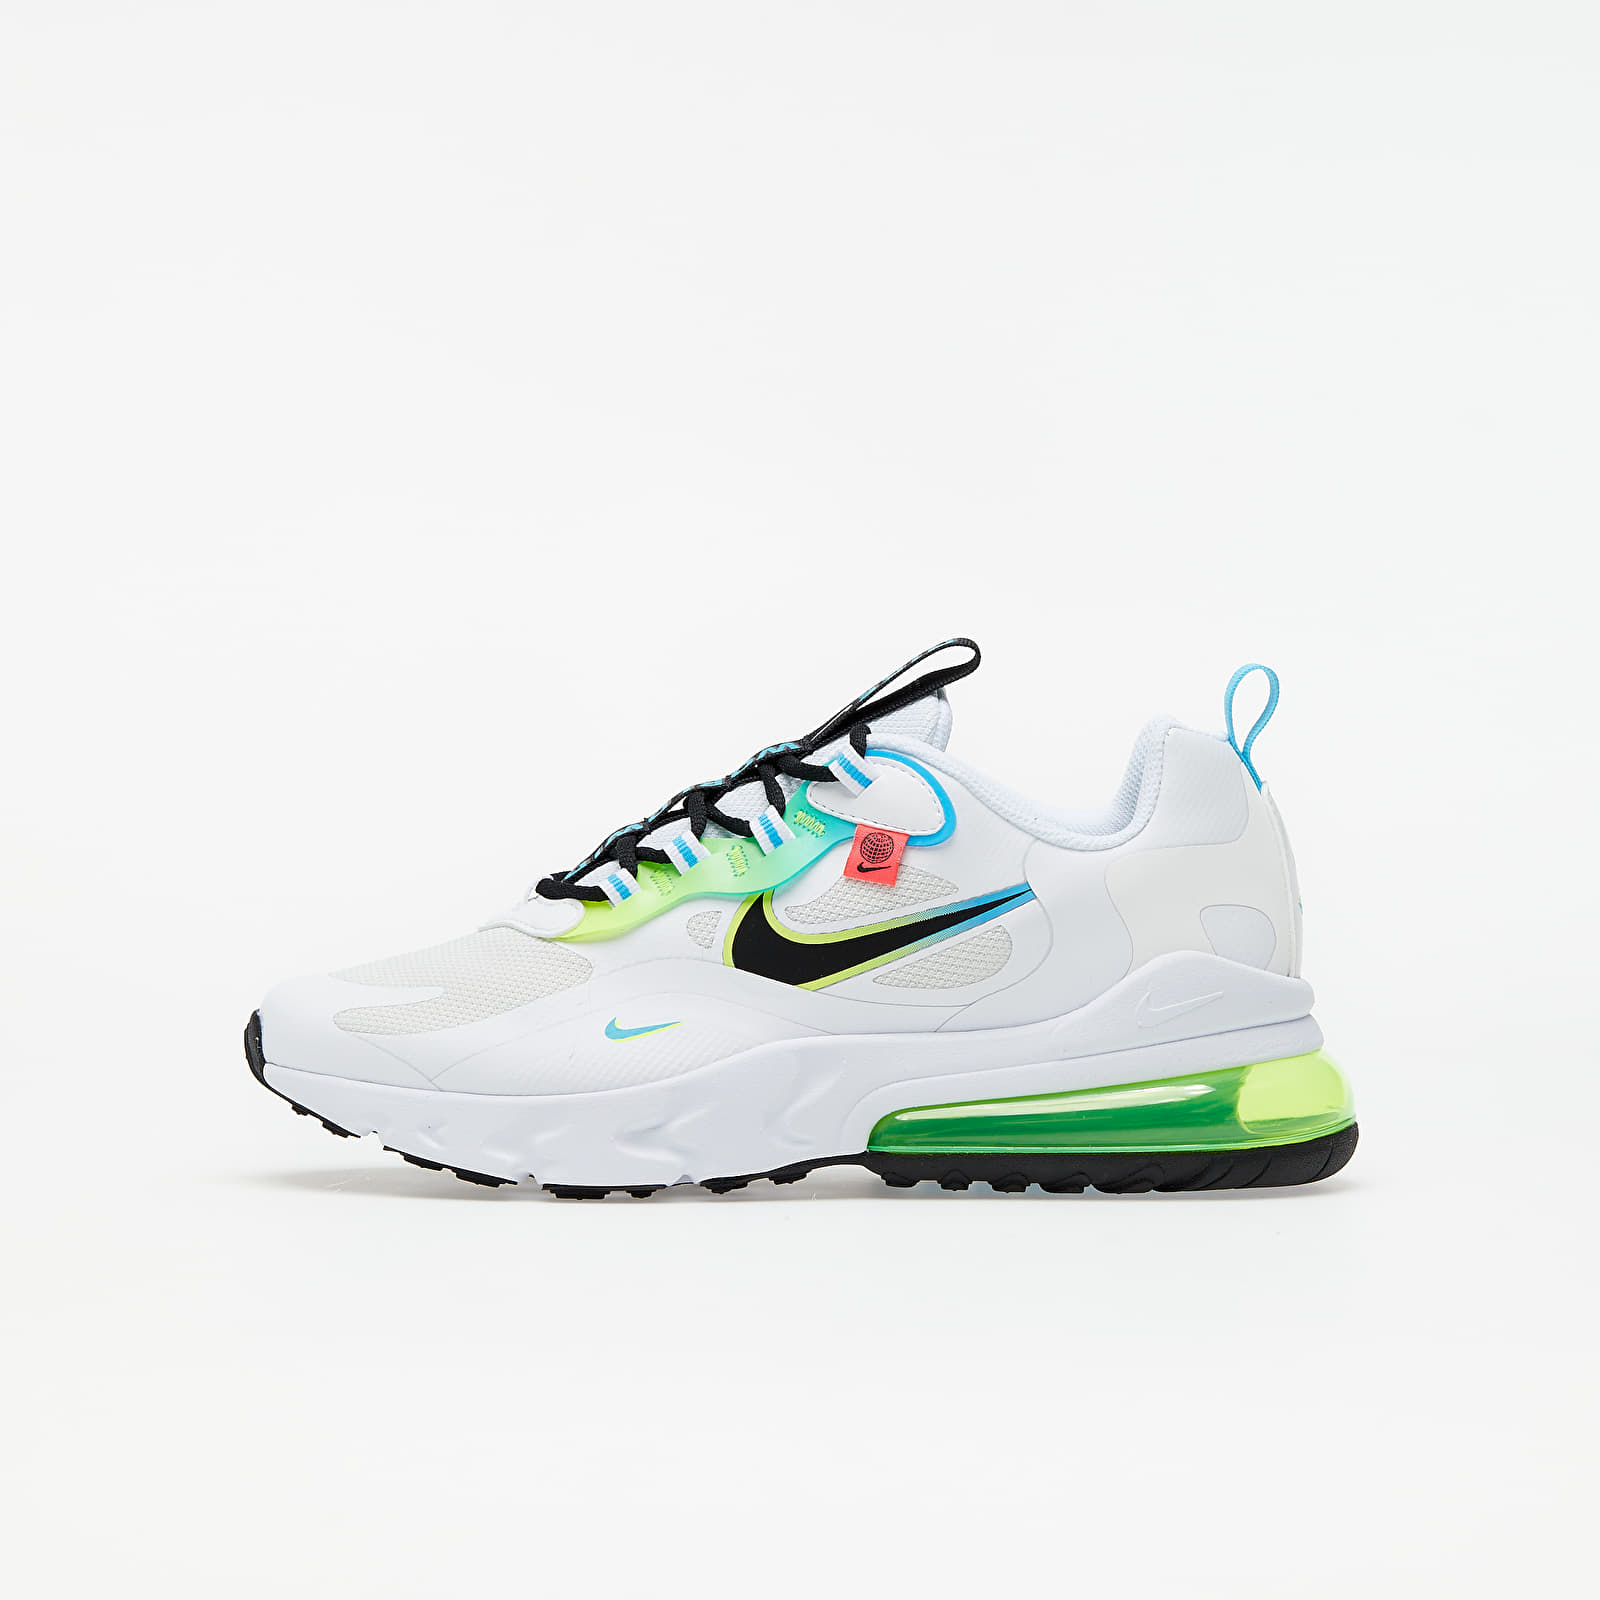 Nike Air Max 270 React GS White/ Black-Blue Fury-Volt EUR 37.5